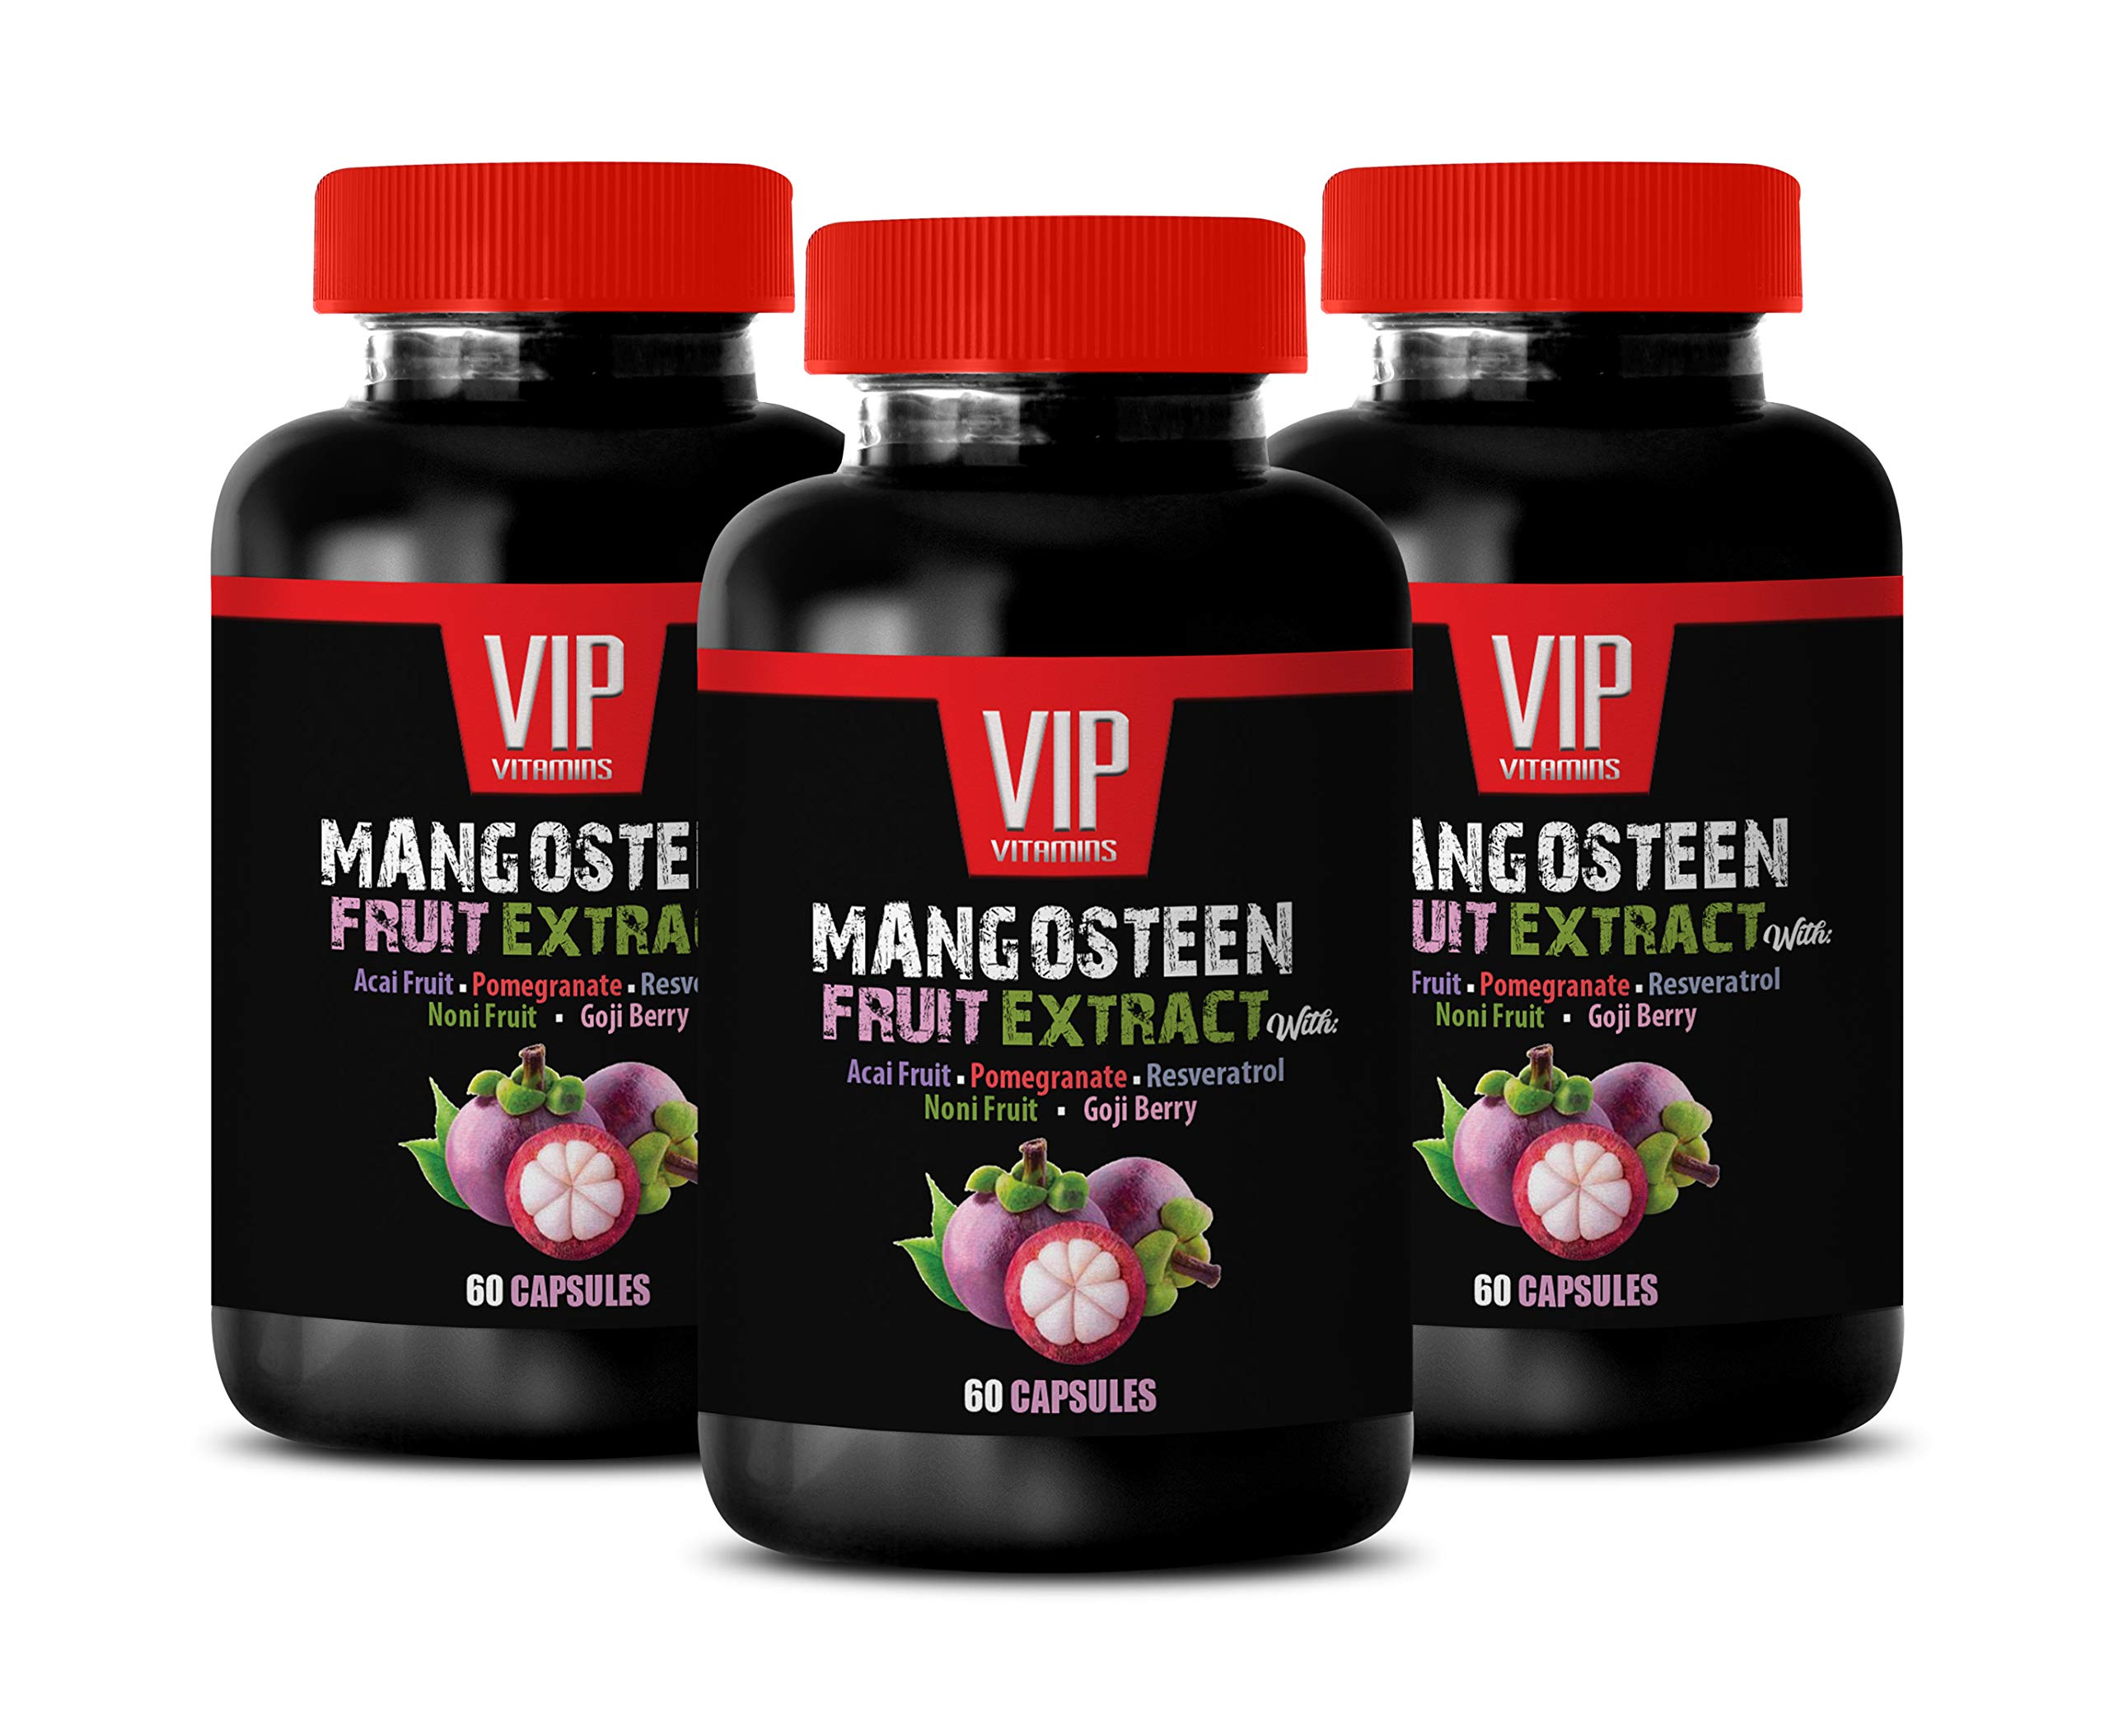 Immune System Natural Pills - Mangosteen Fruit Extract with ACAI Fruit, Pomegranate, RESVERATROL, NONI Fruit, Goji Berry - Acai Berry Pills - 3 Bottles 180 Capsules